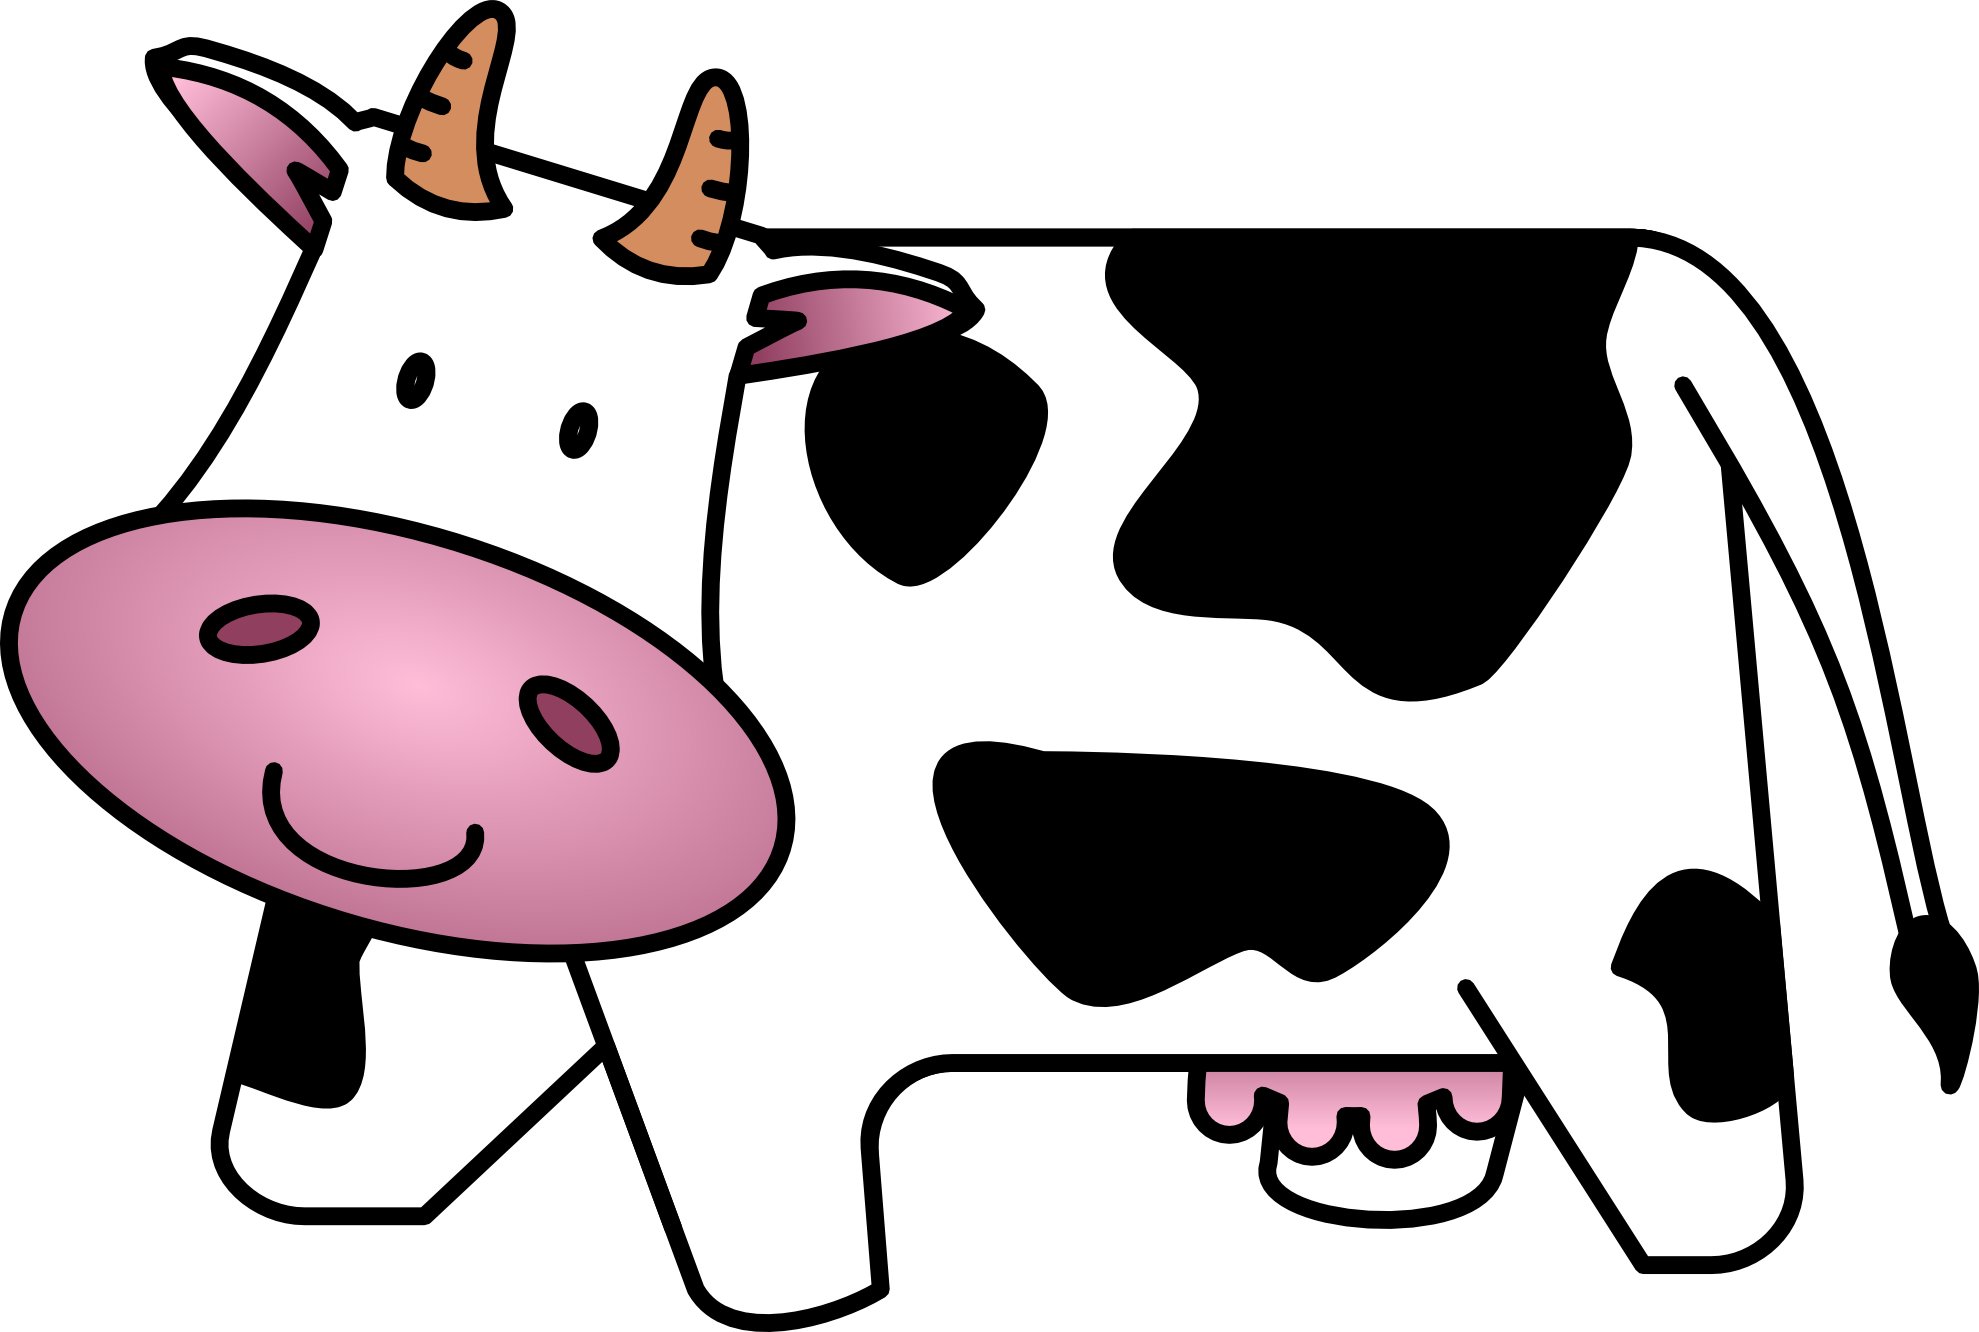 Cow clipart #10, Download drawings